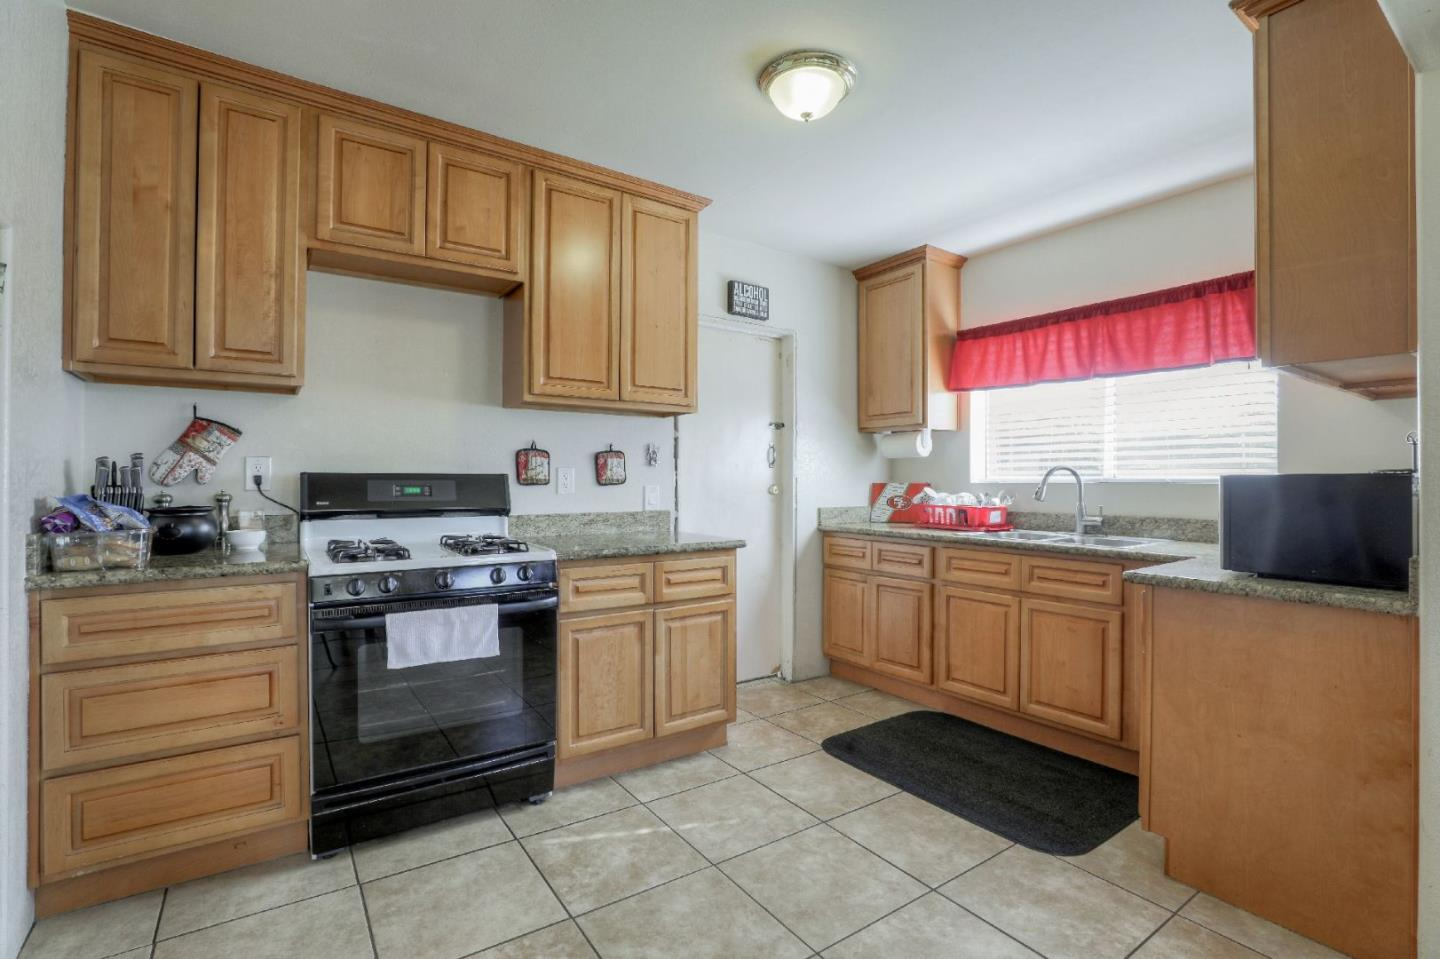 304 PERSIAN DR, SUNNYVALE, CA 94089  Photo 4